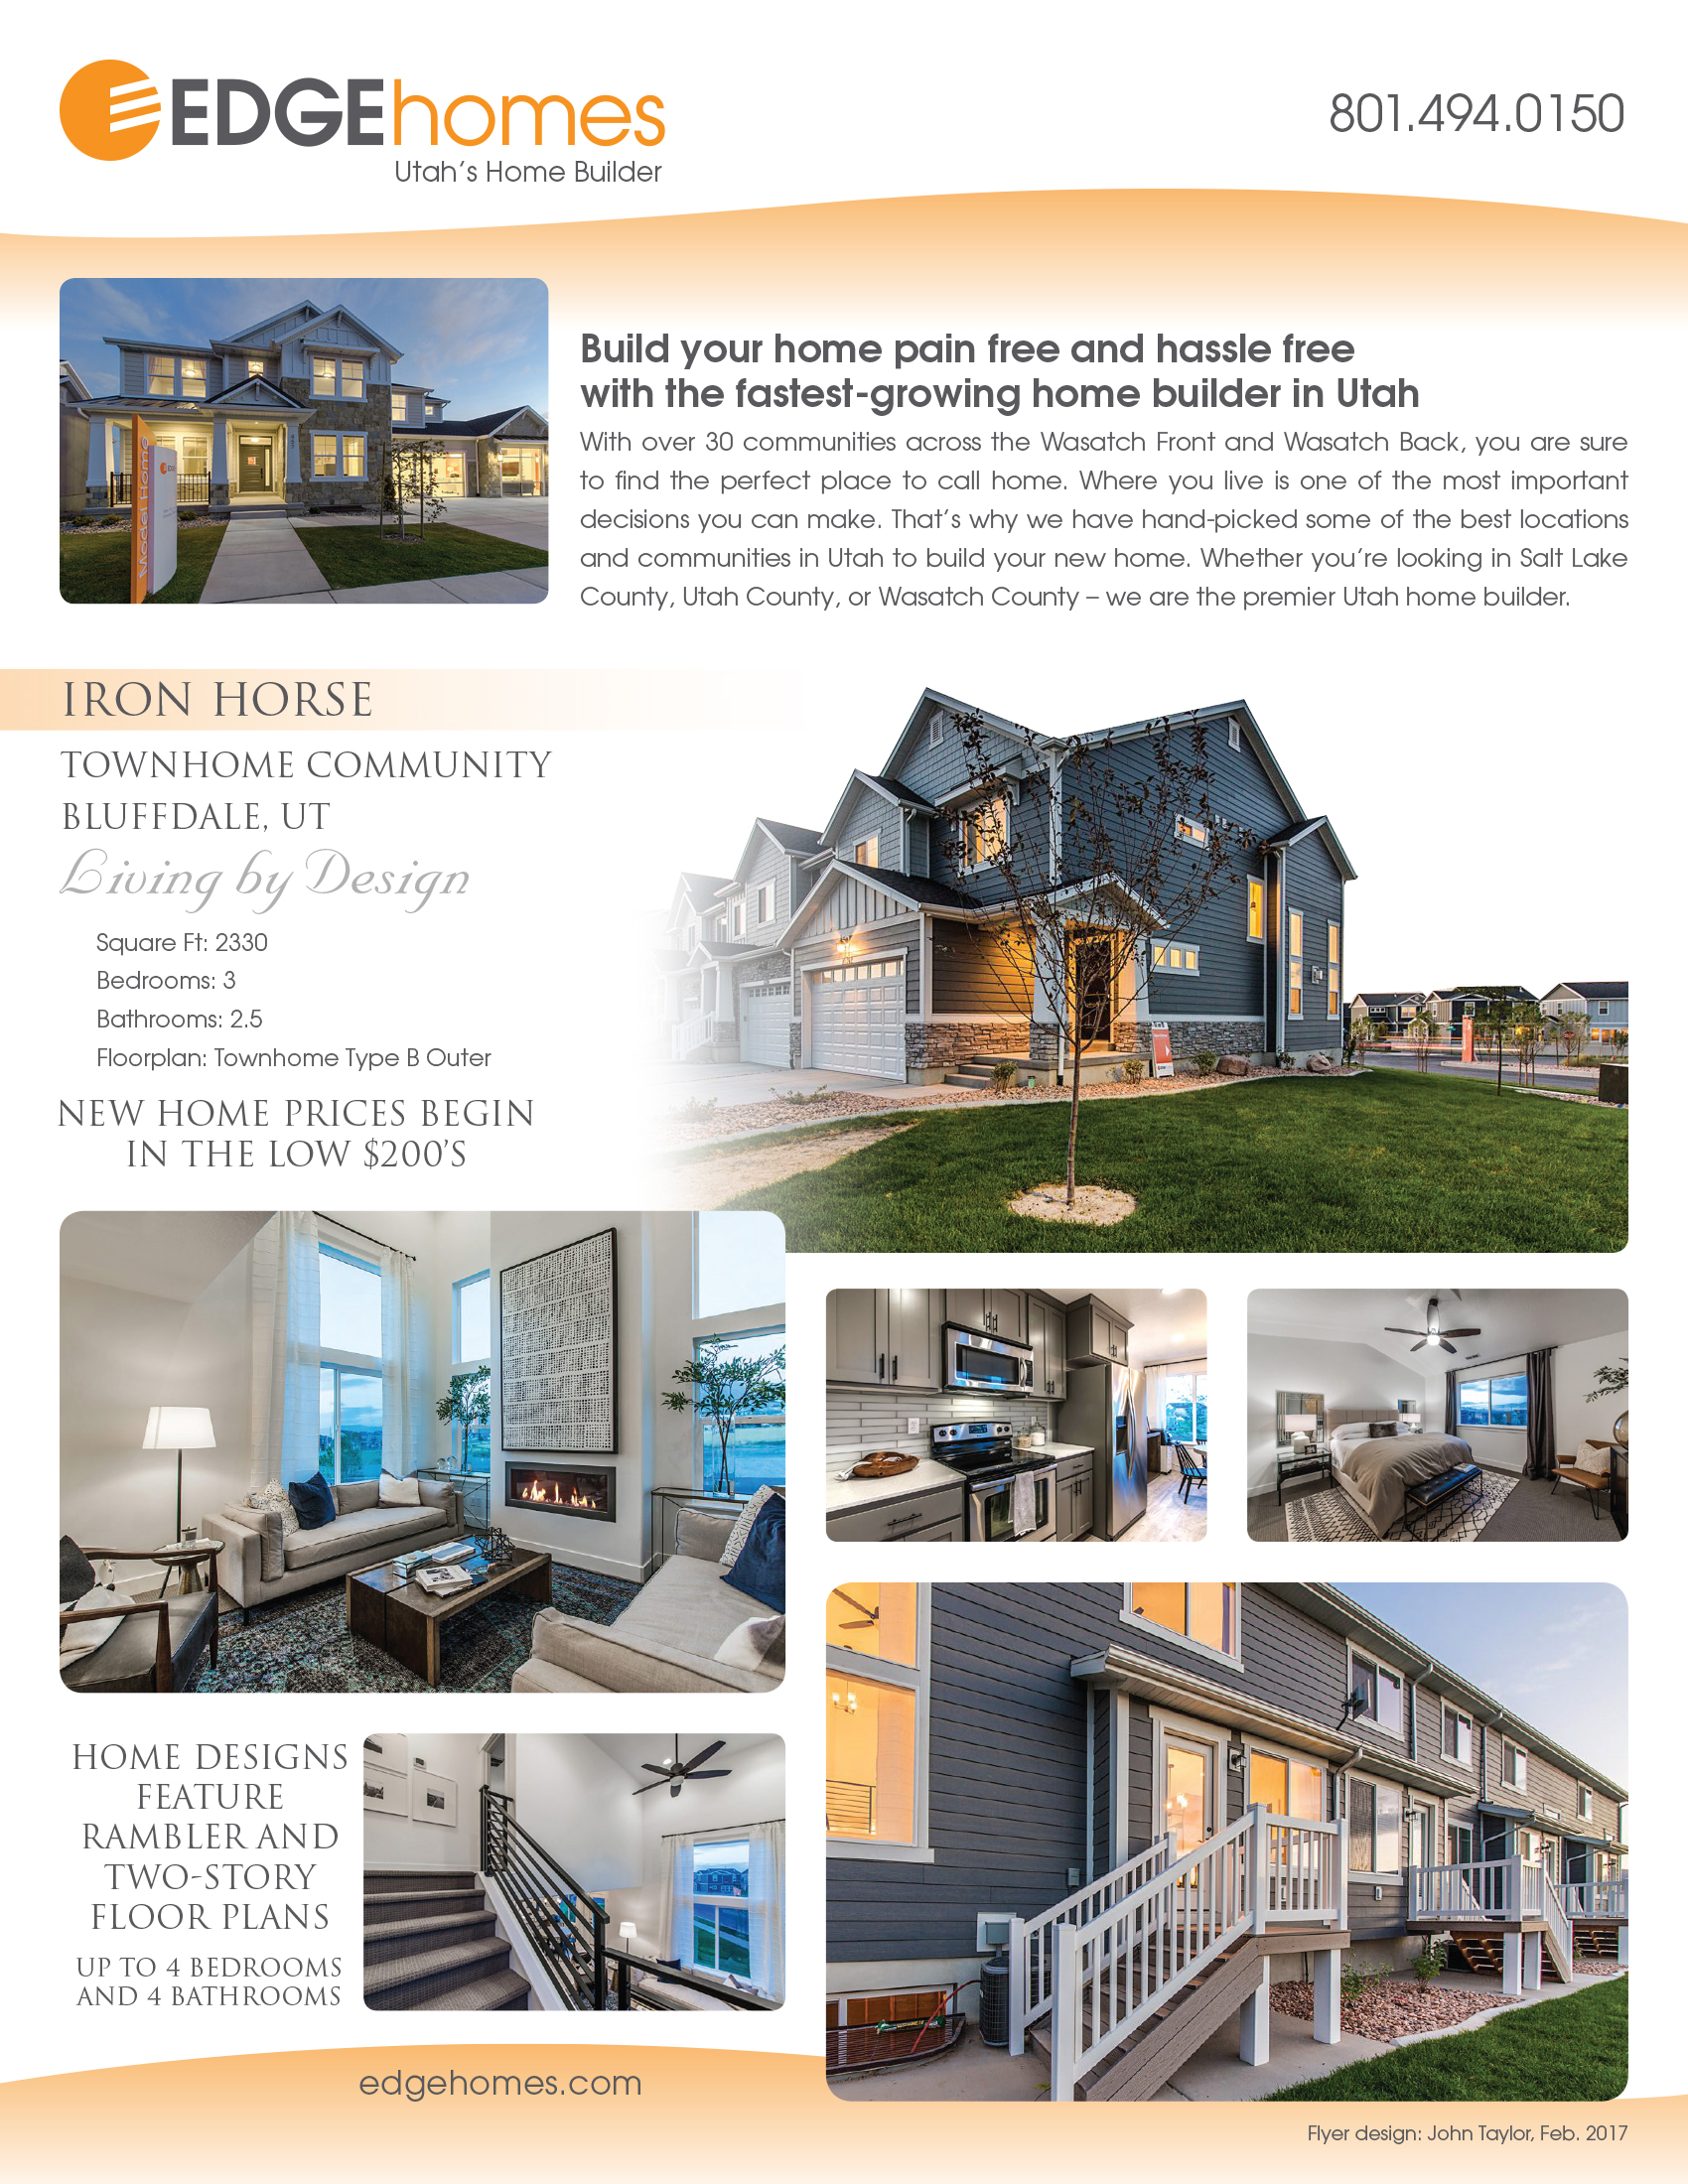 Edgehomes Flyer Marketing Materials For Home Builders